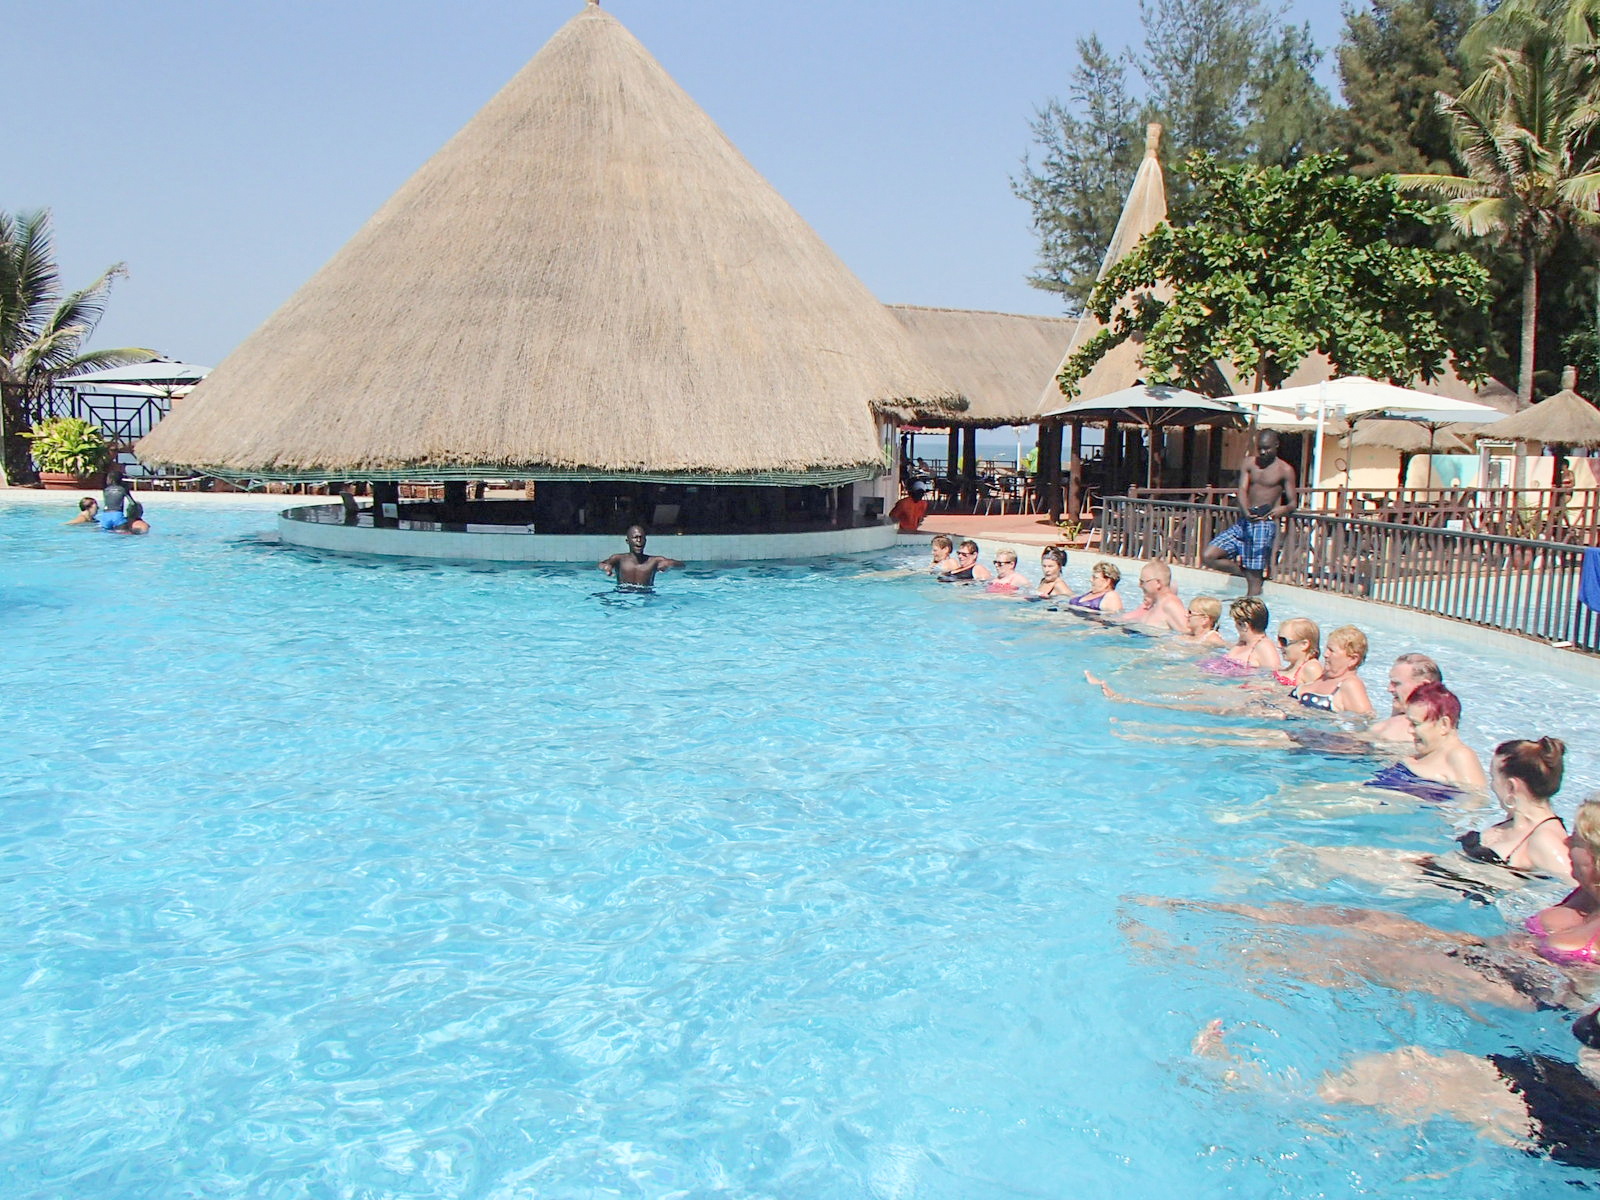 Hotel pool with people  File:People tourists in swimming pool hotel Gambia.jpg - Wikimedia ...